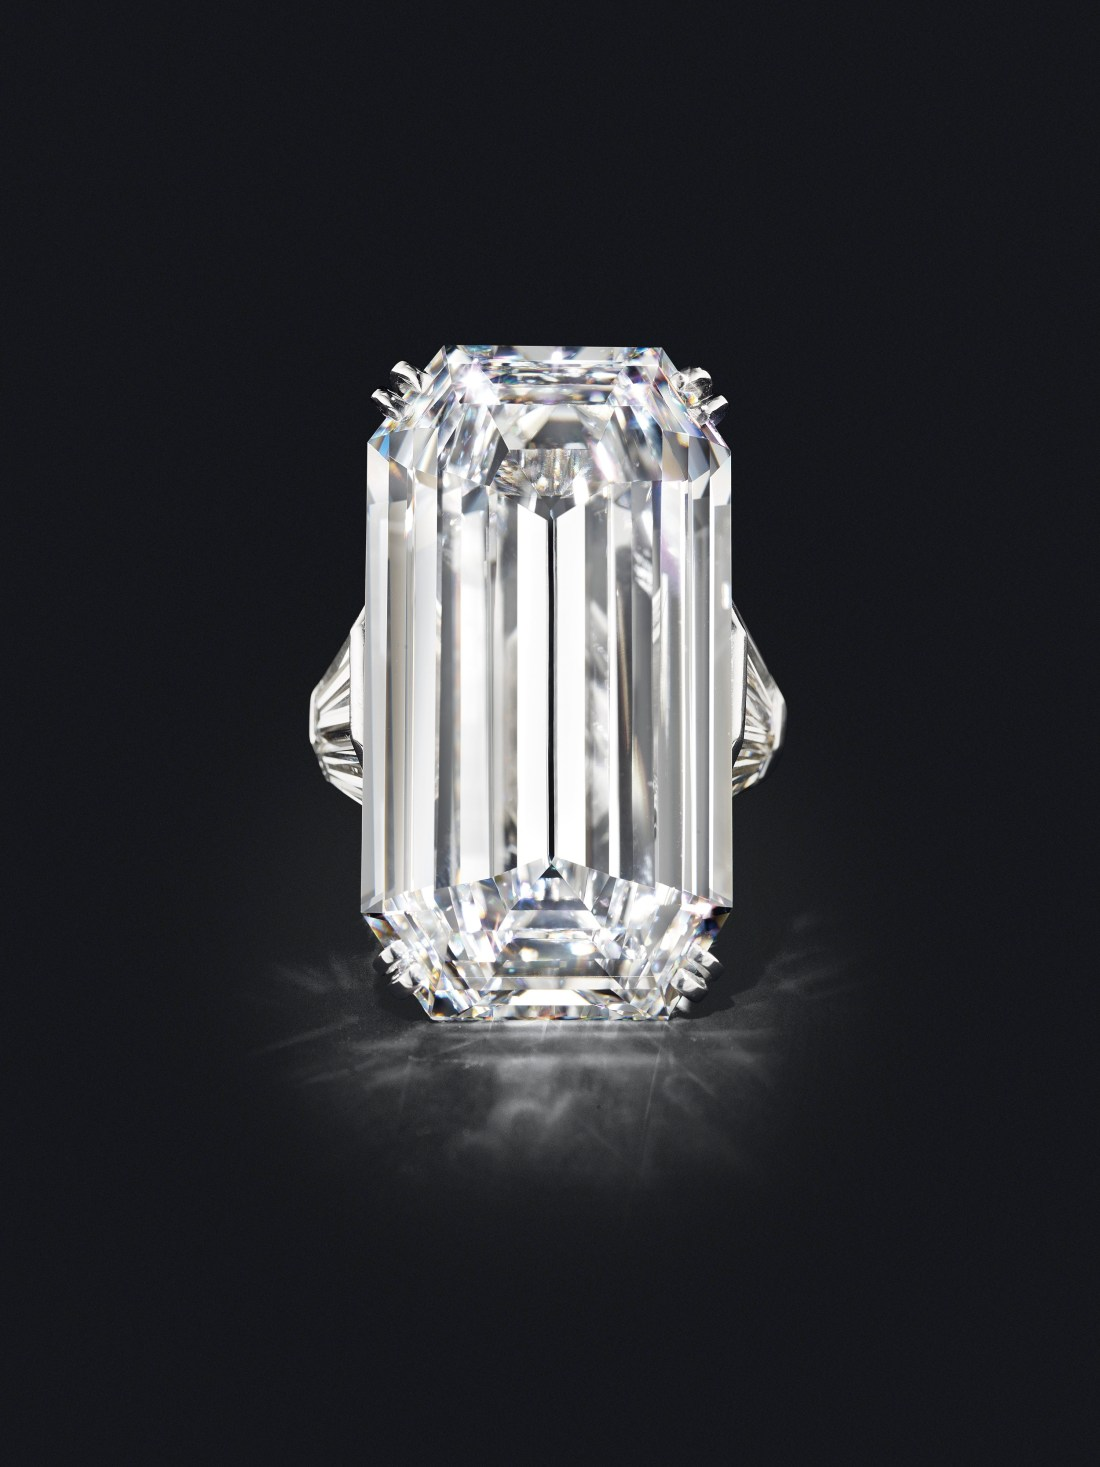 The Mirror of Paradise 52.58-carat Golconda diamond, shown in full on a black background. Part of the ring setting is visible on either side of the stone.